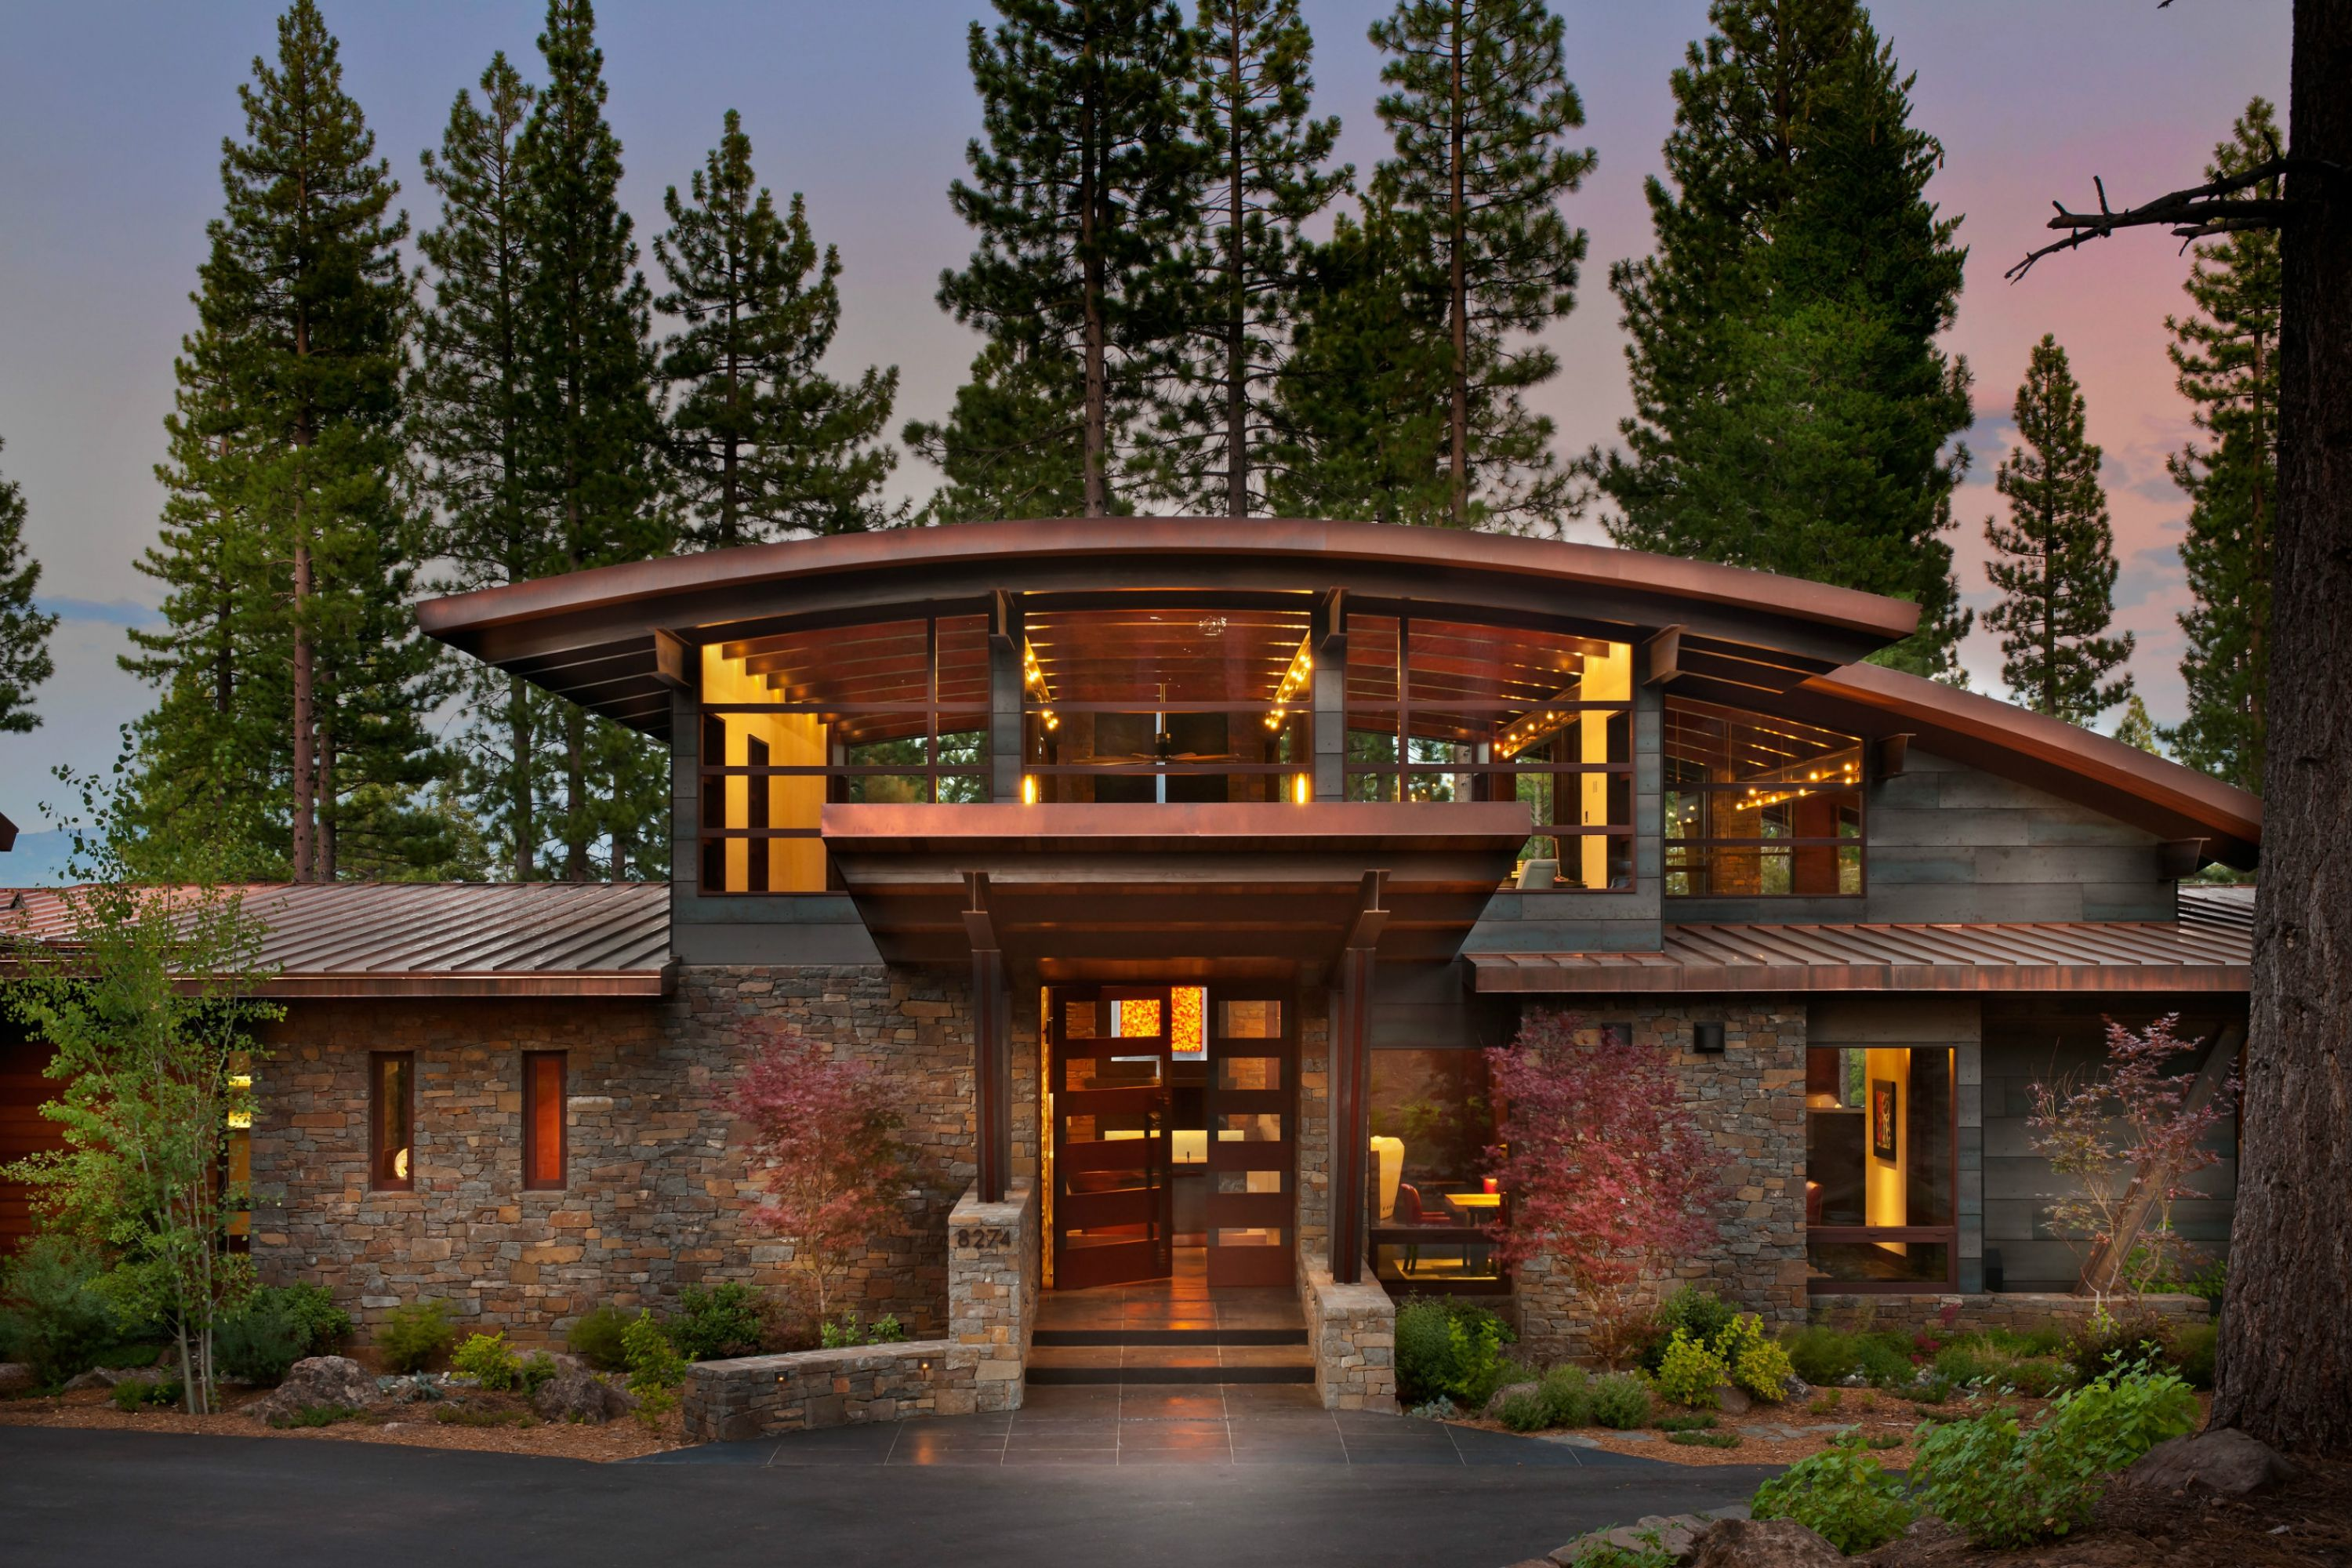 Curved Roof Design Pictures Remodel Decor and Ideas General